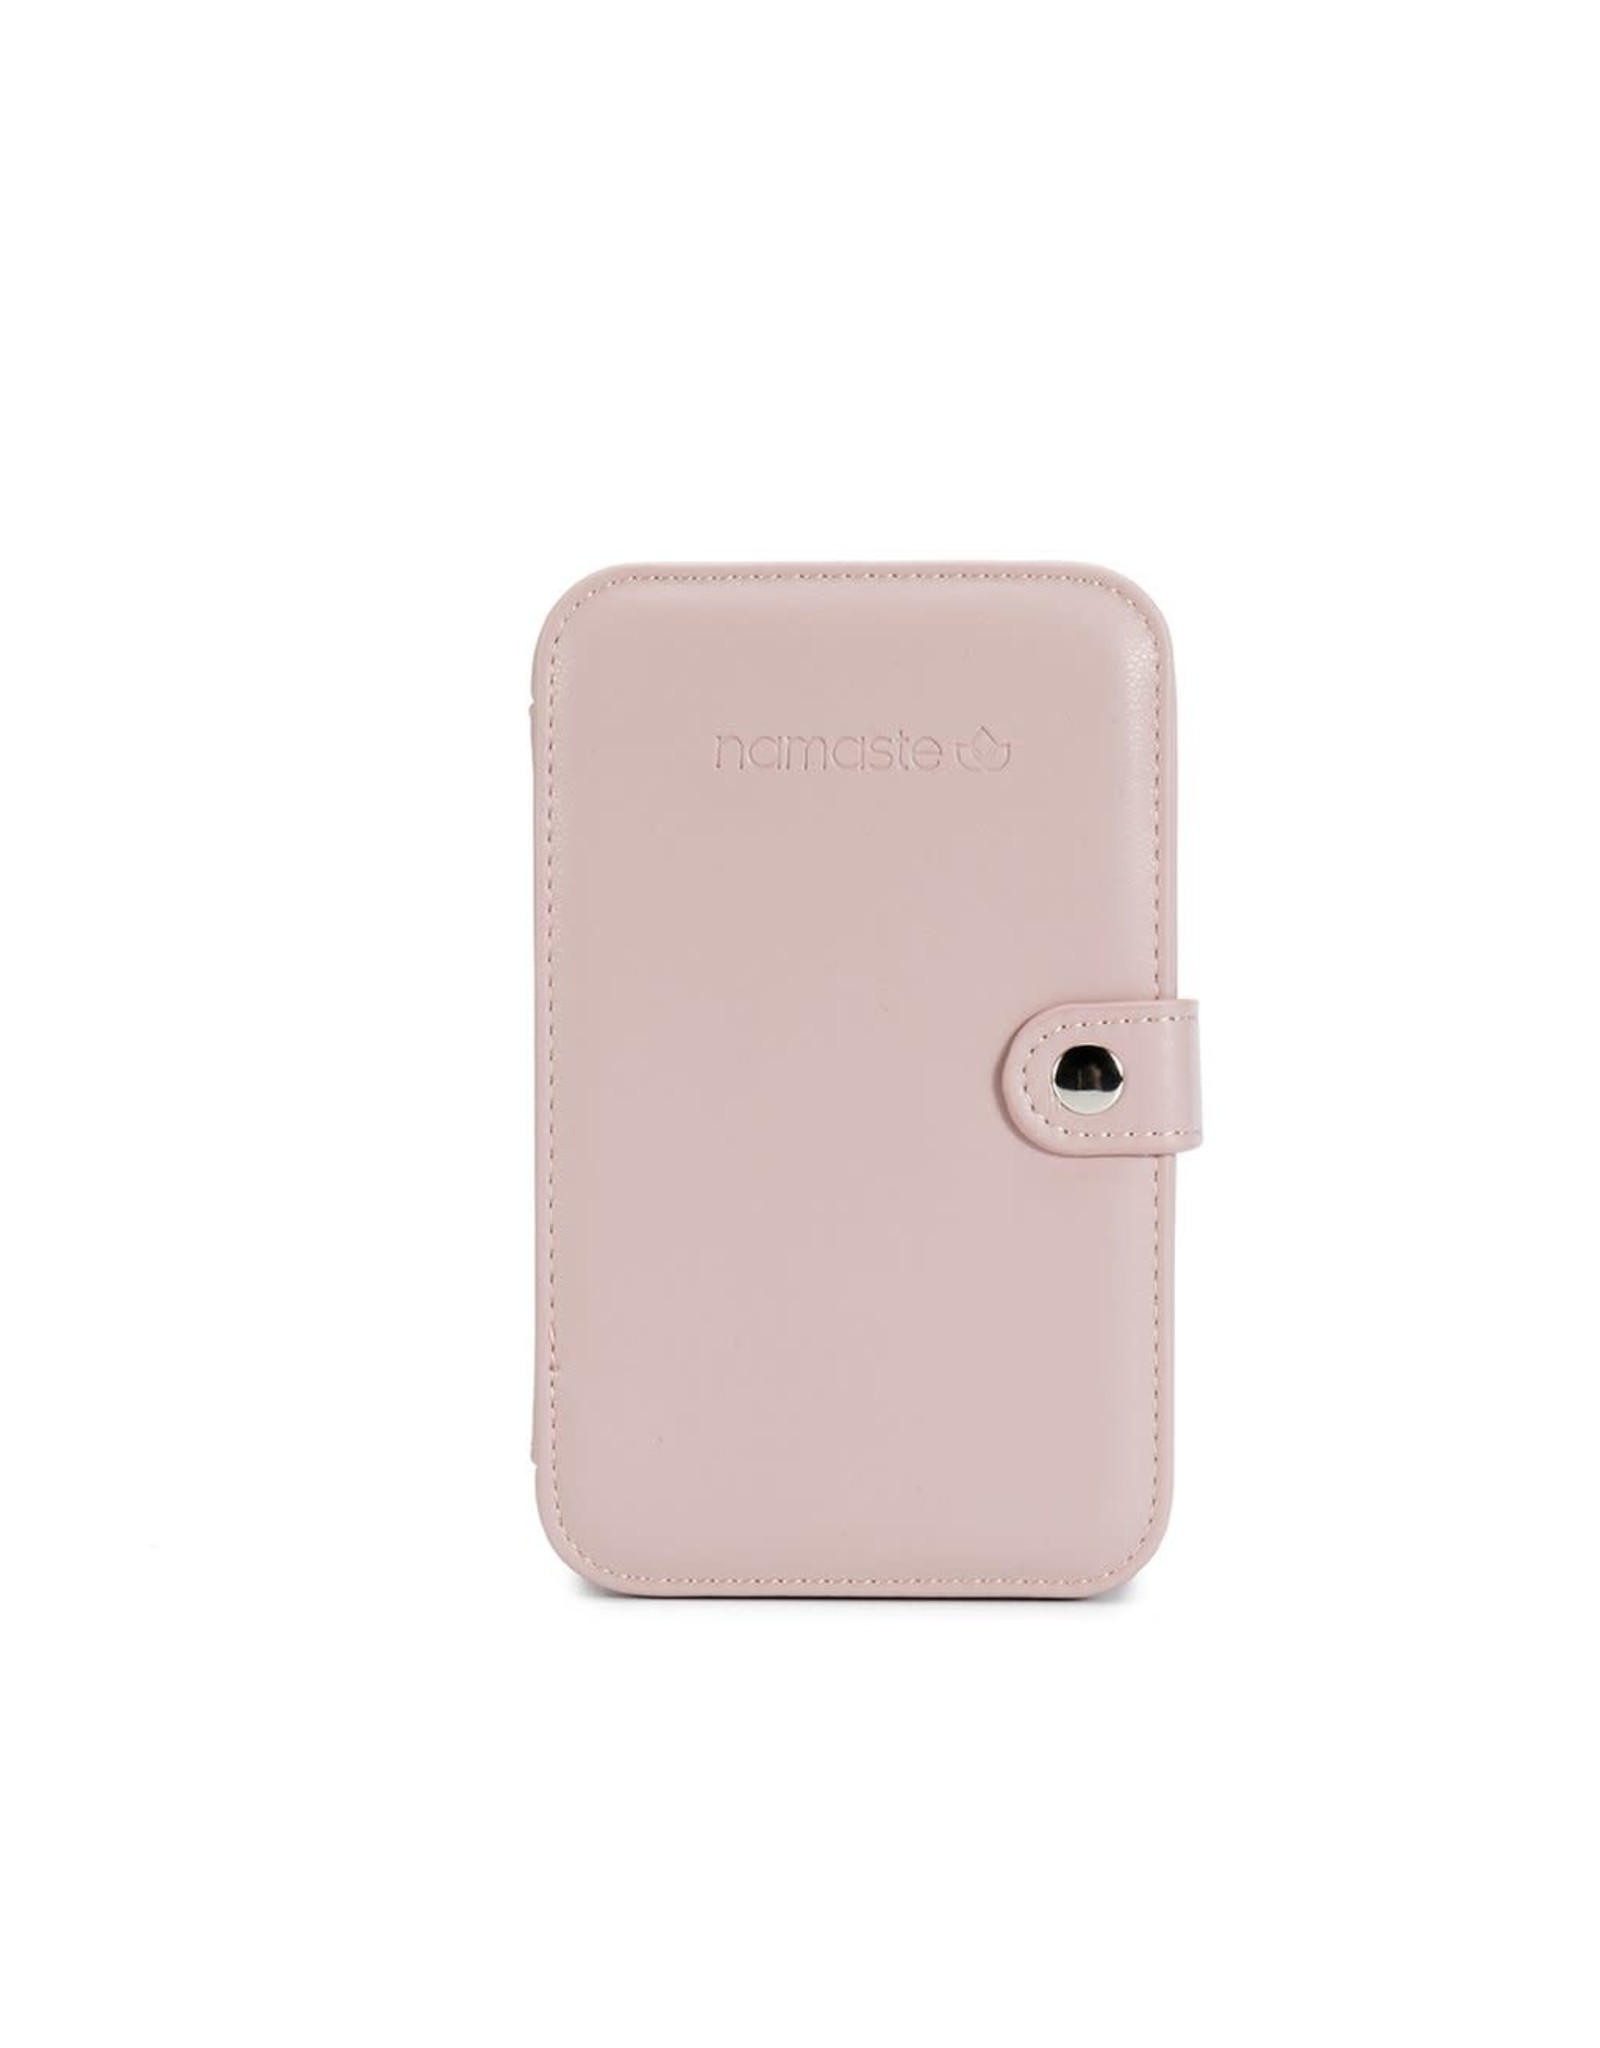 Namaste Maker's Interchangeable Buddy Case Blush